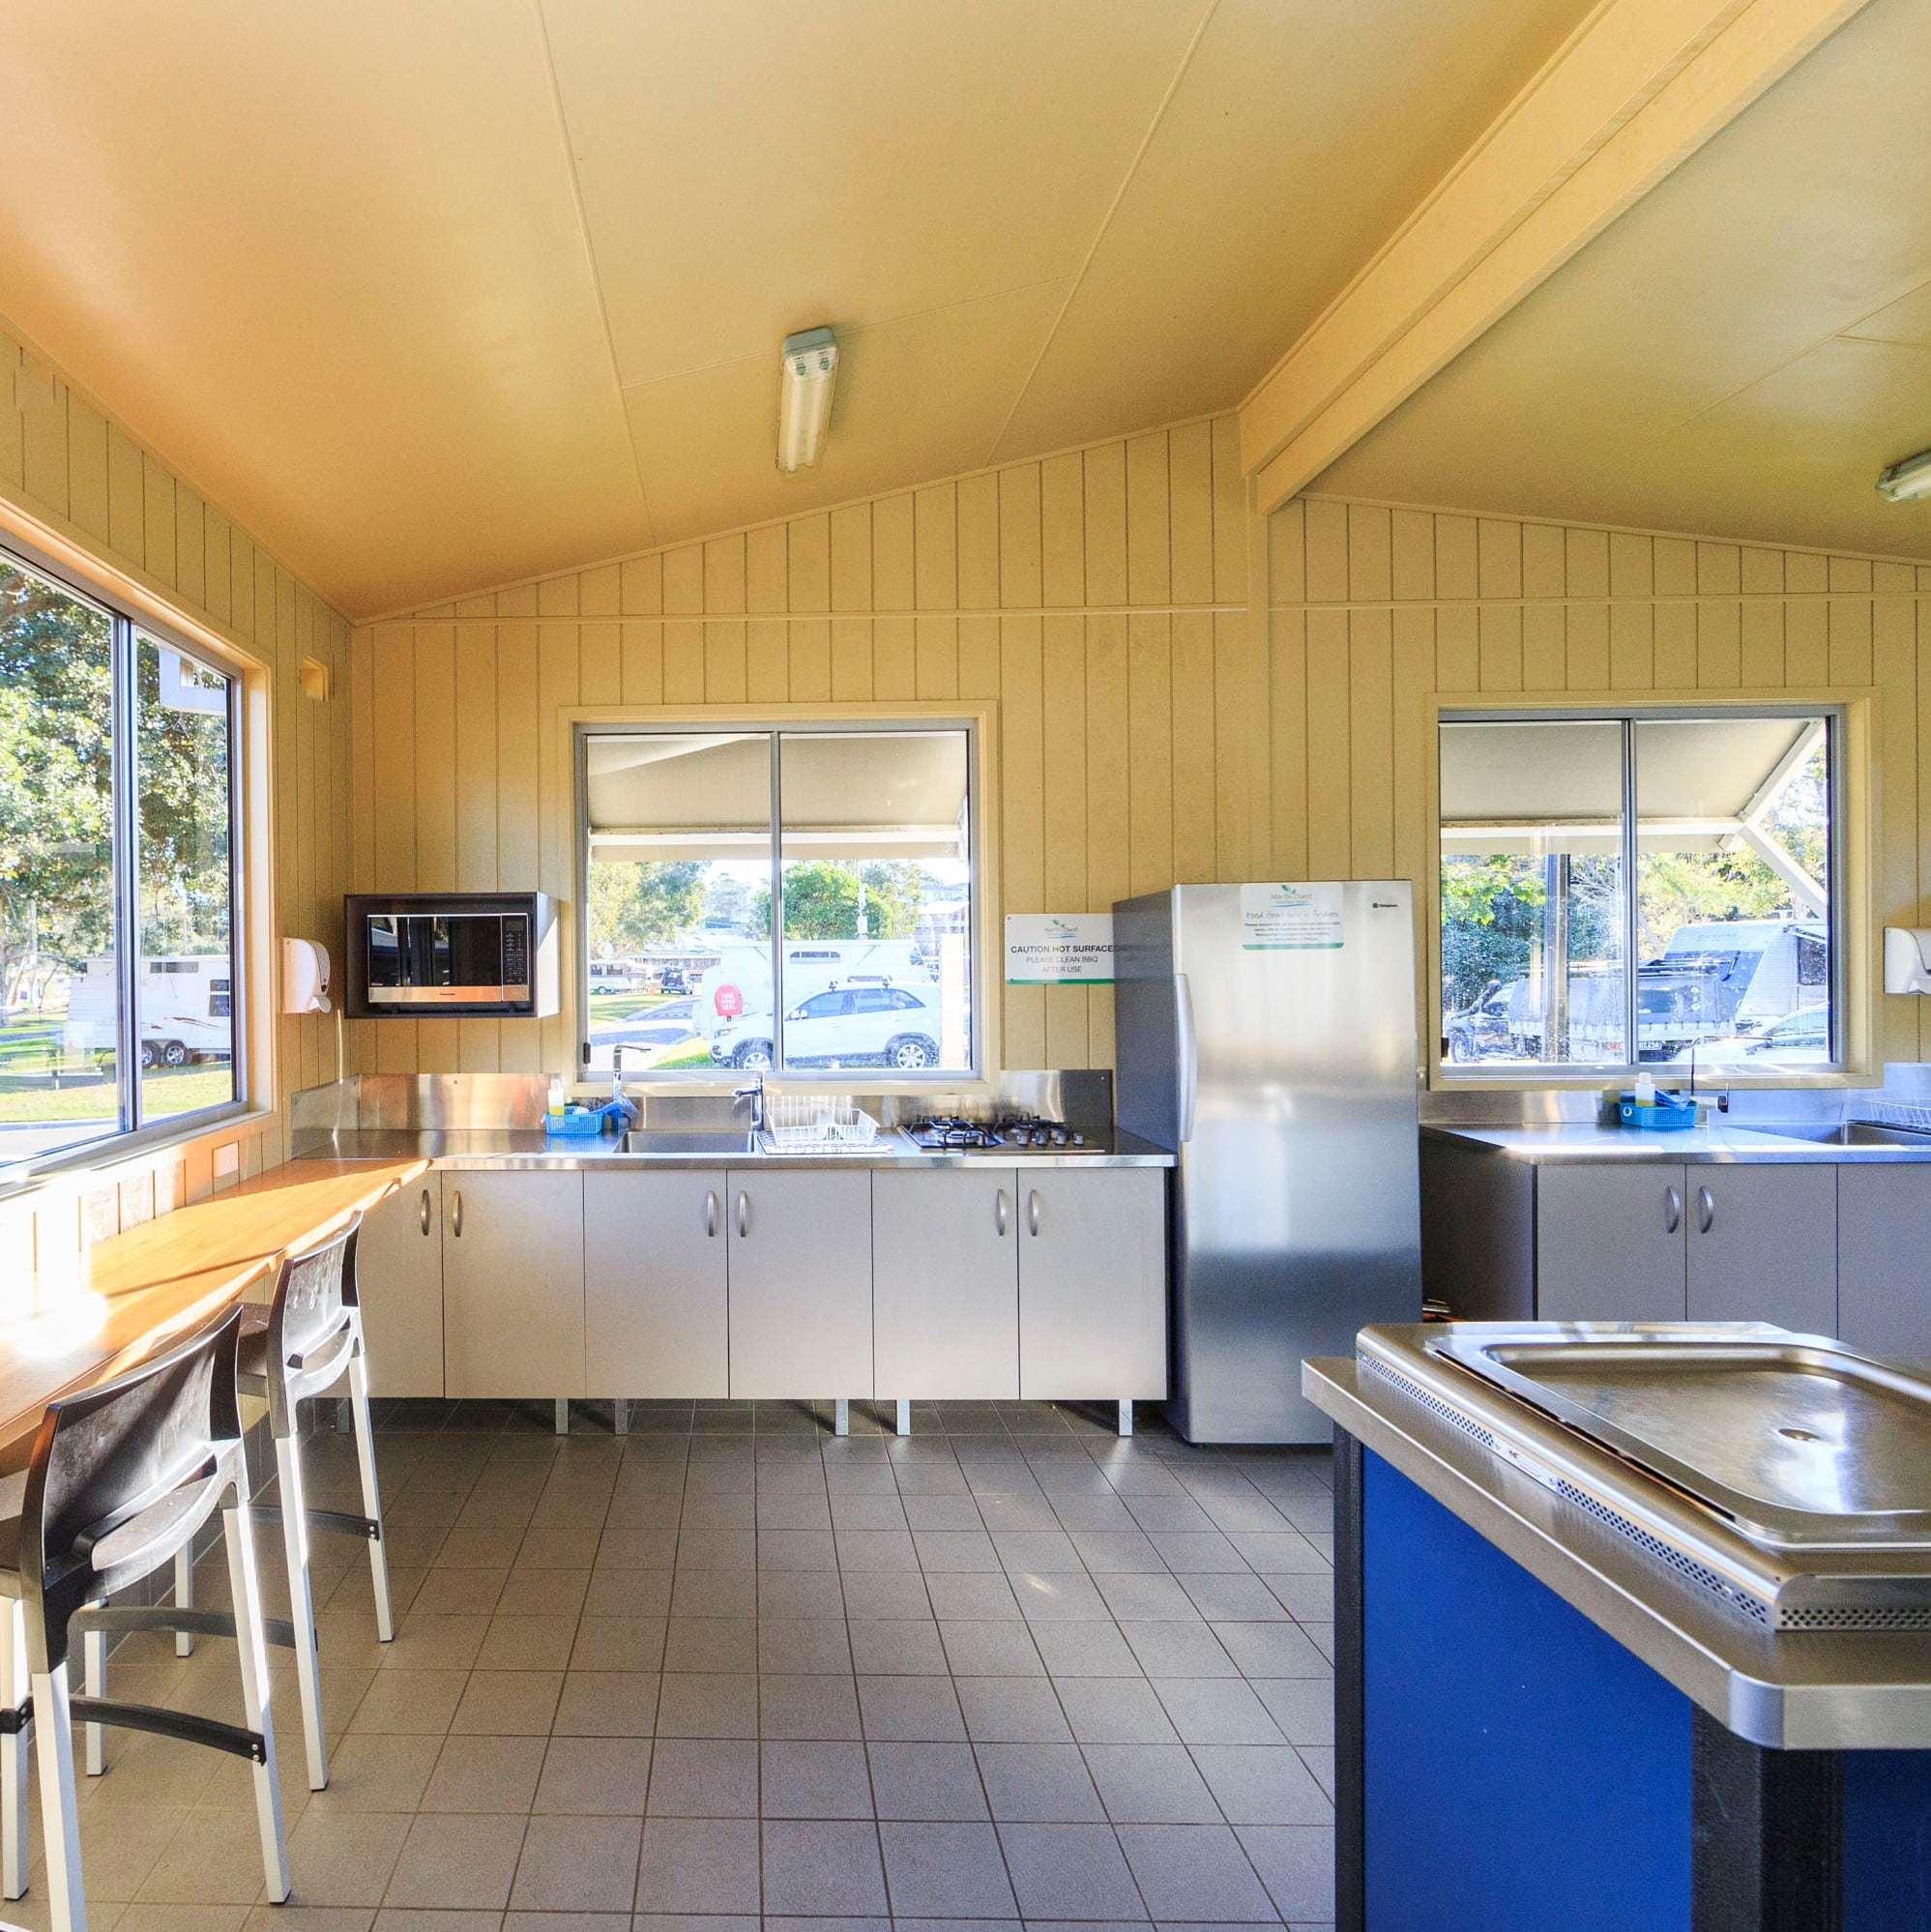 Image of the camp kitchen at Reflections Holiday Parks Scotts Head